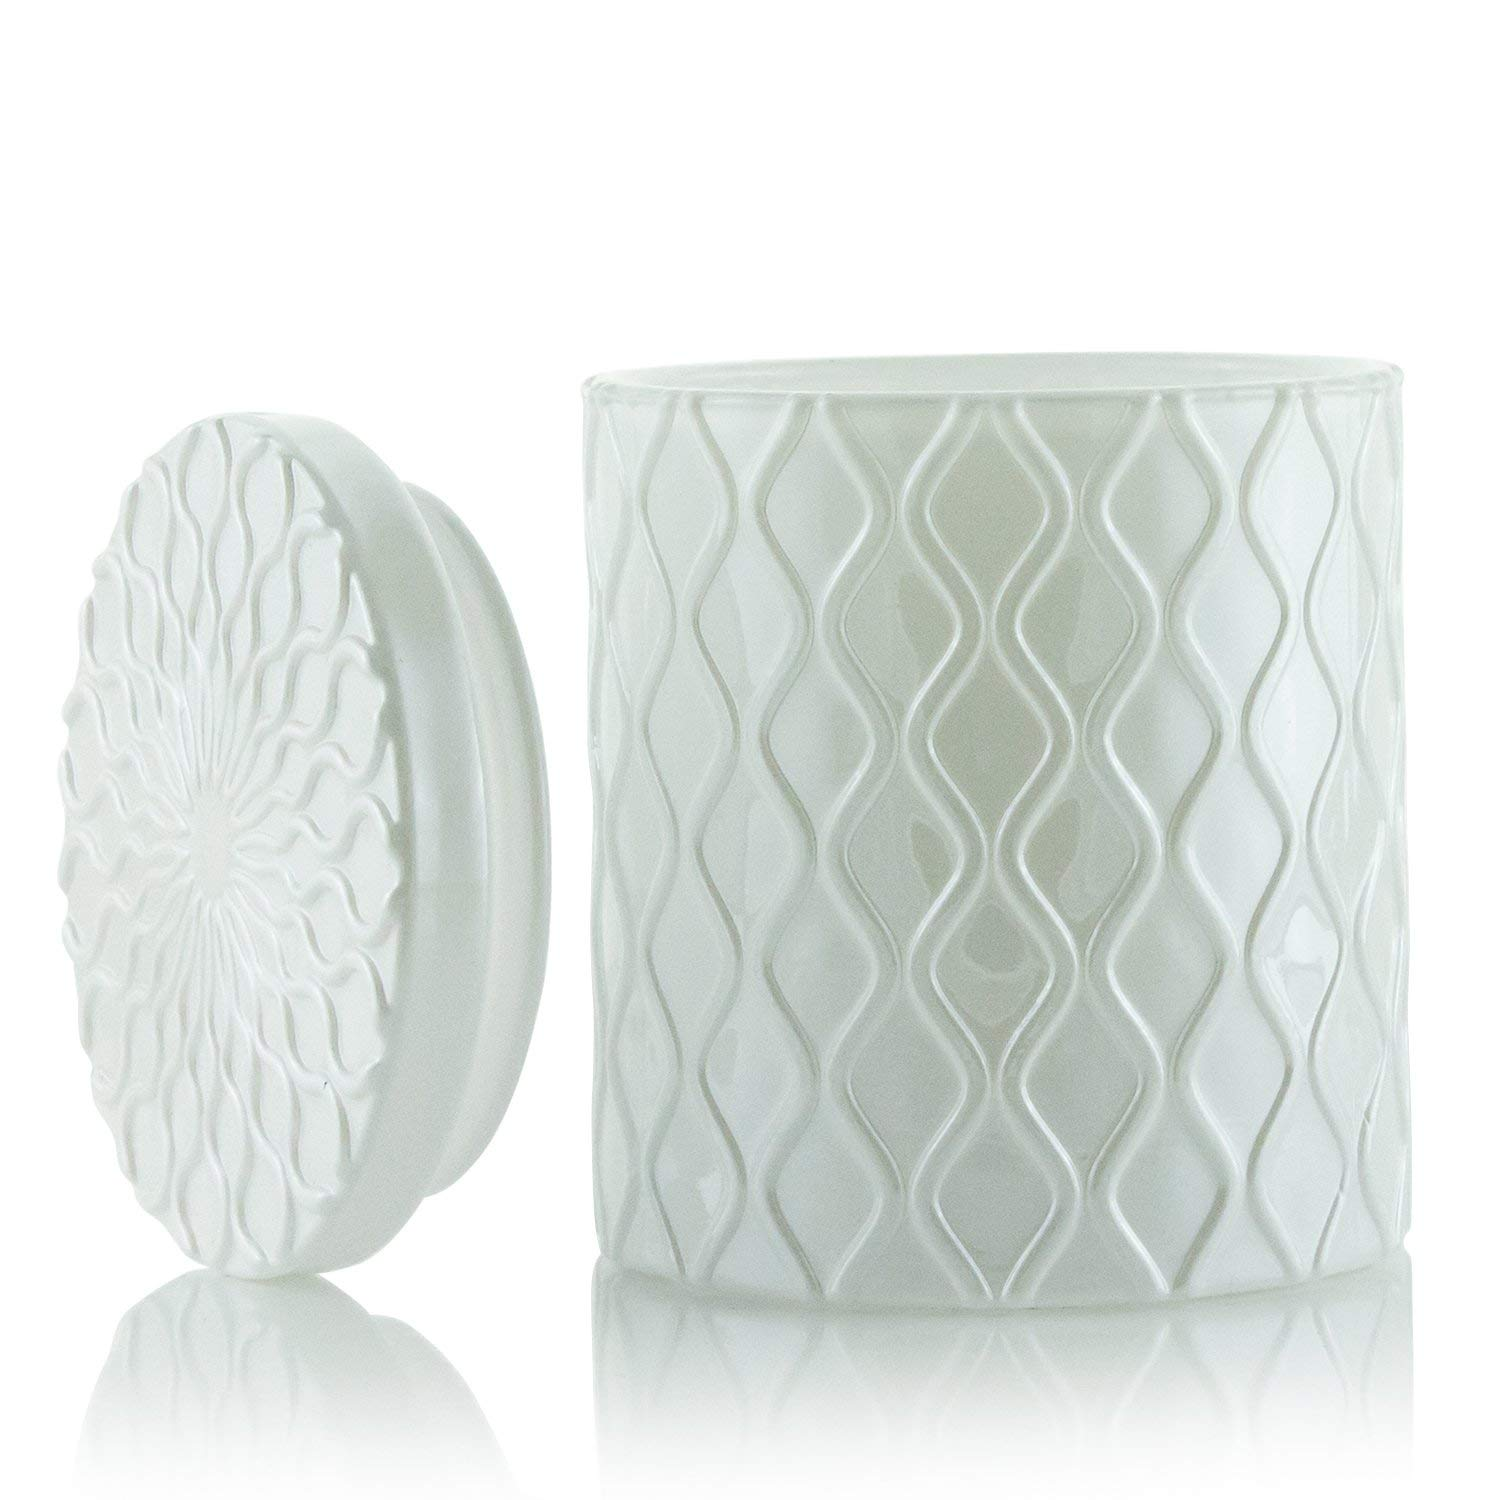 Amazon com: Candle Jars Empty Wholesale, Luxury Candle Containers